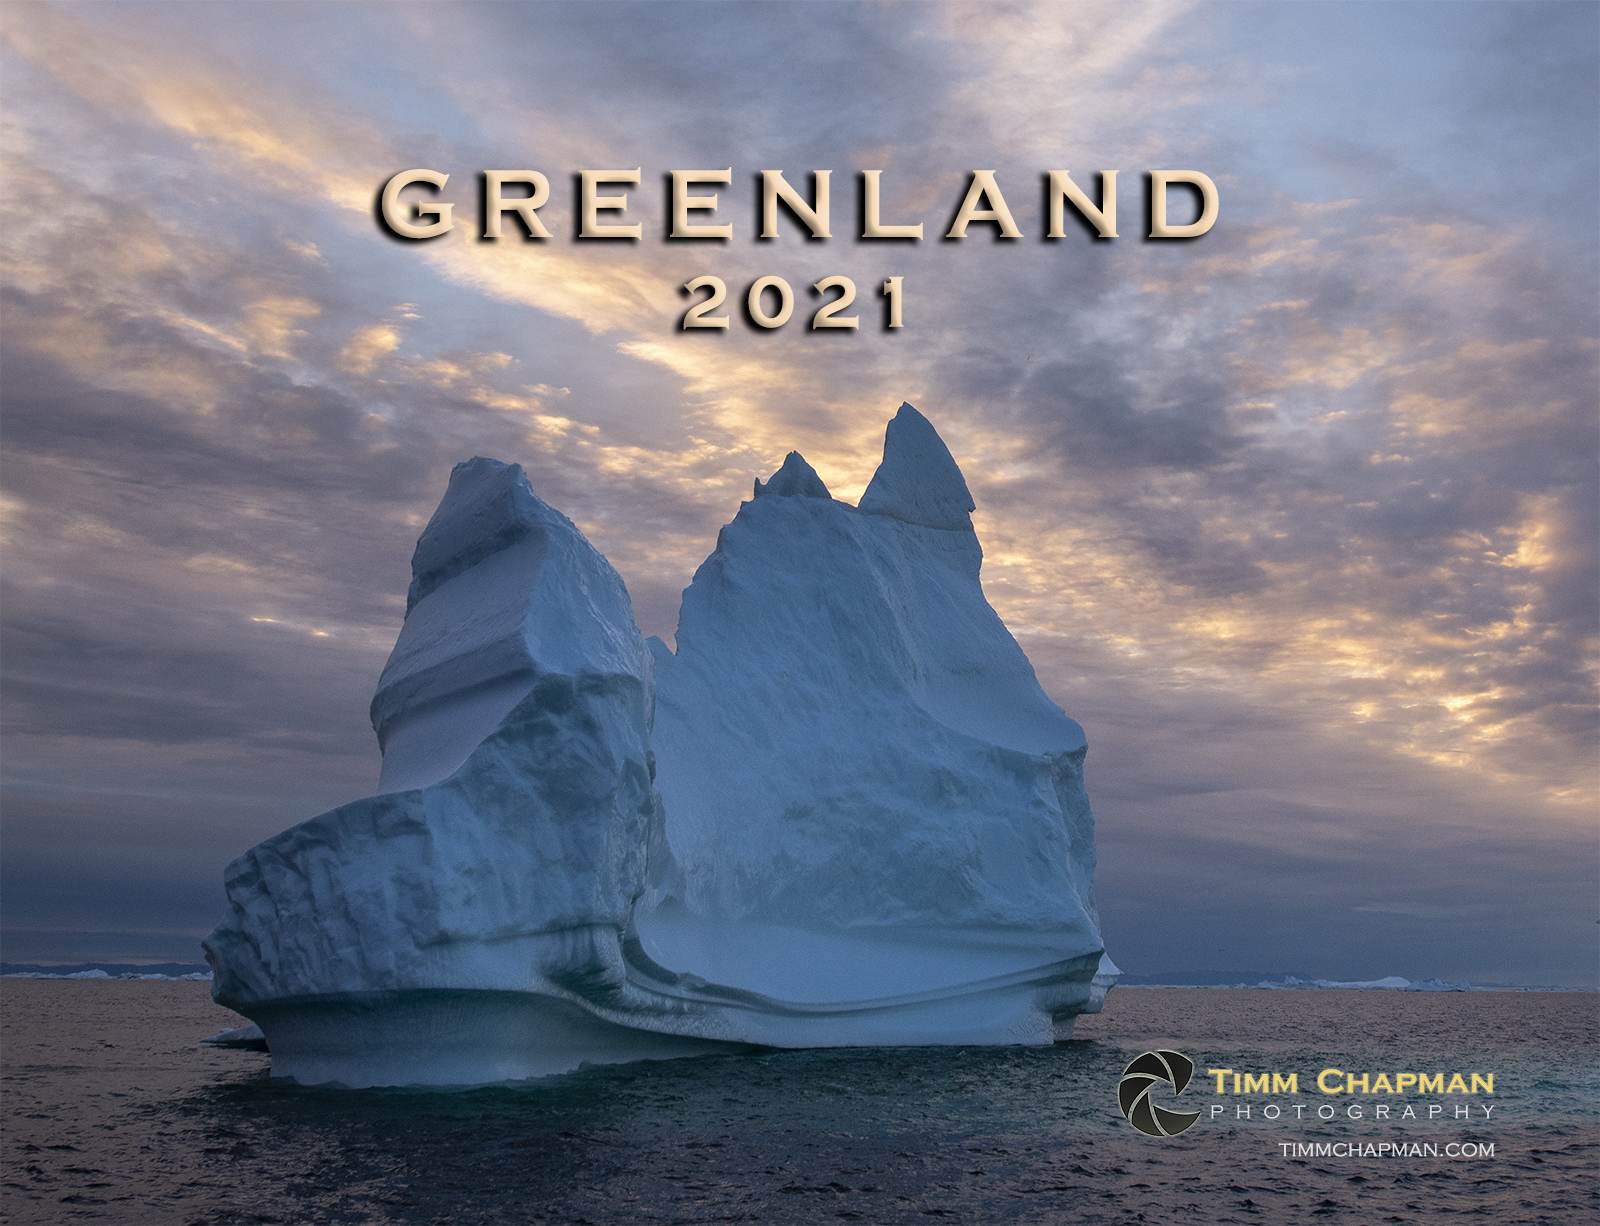 A collection of images from majestic Greenland presented in a 12 month calendar for 2021